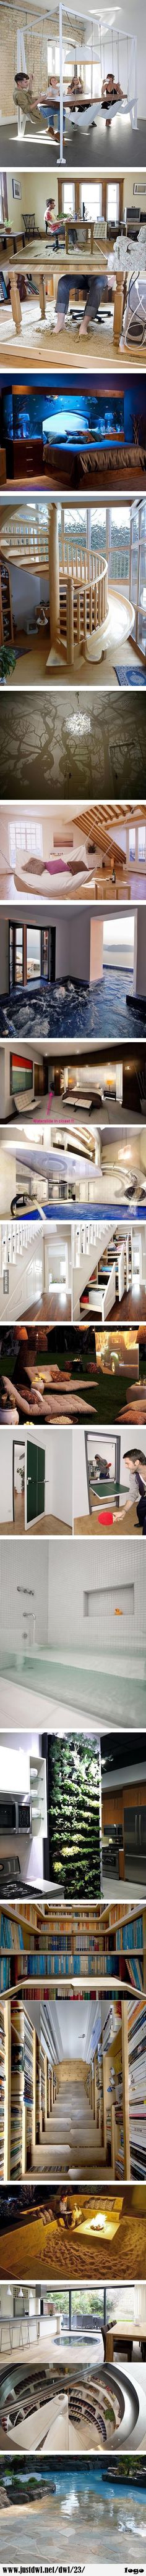 18 awesome #home ideas - Just DWL    The Ultimate Trolling